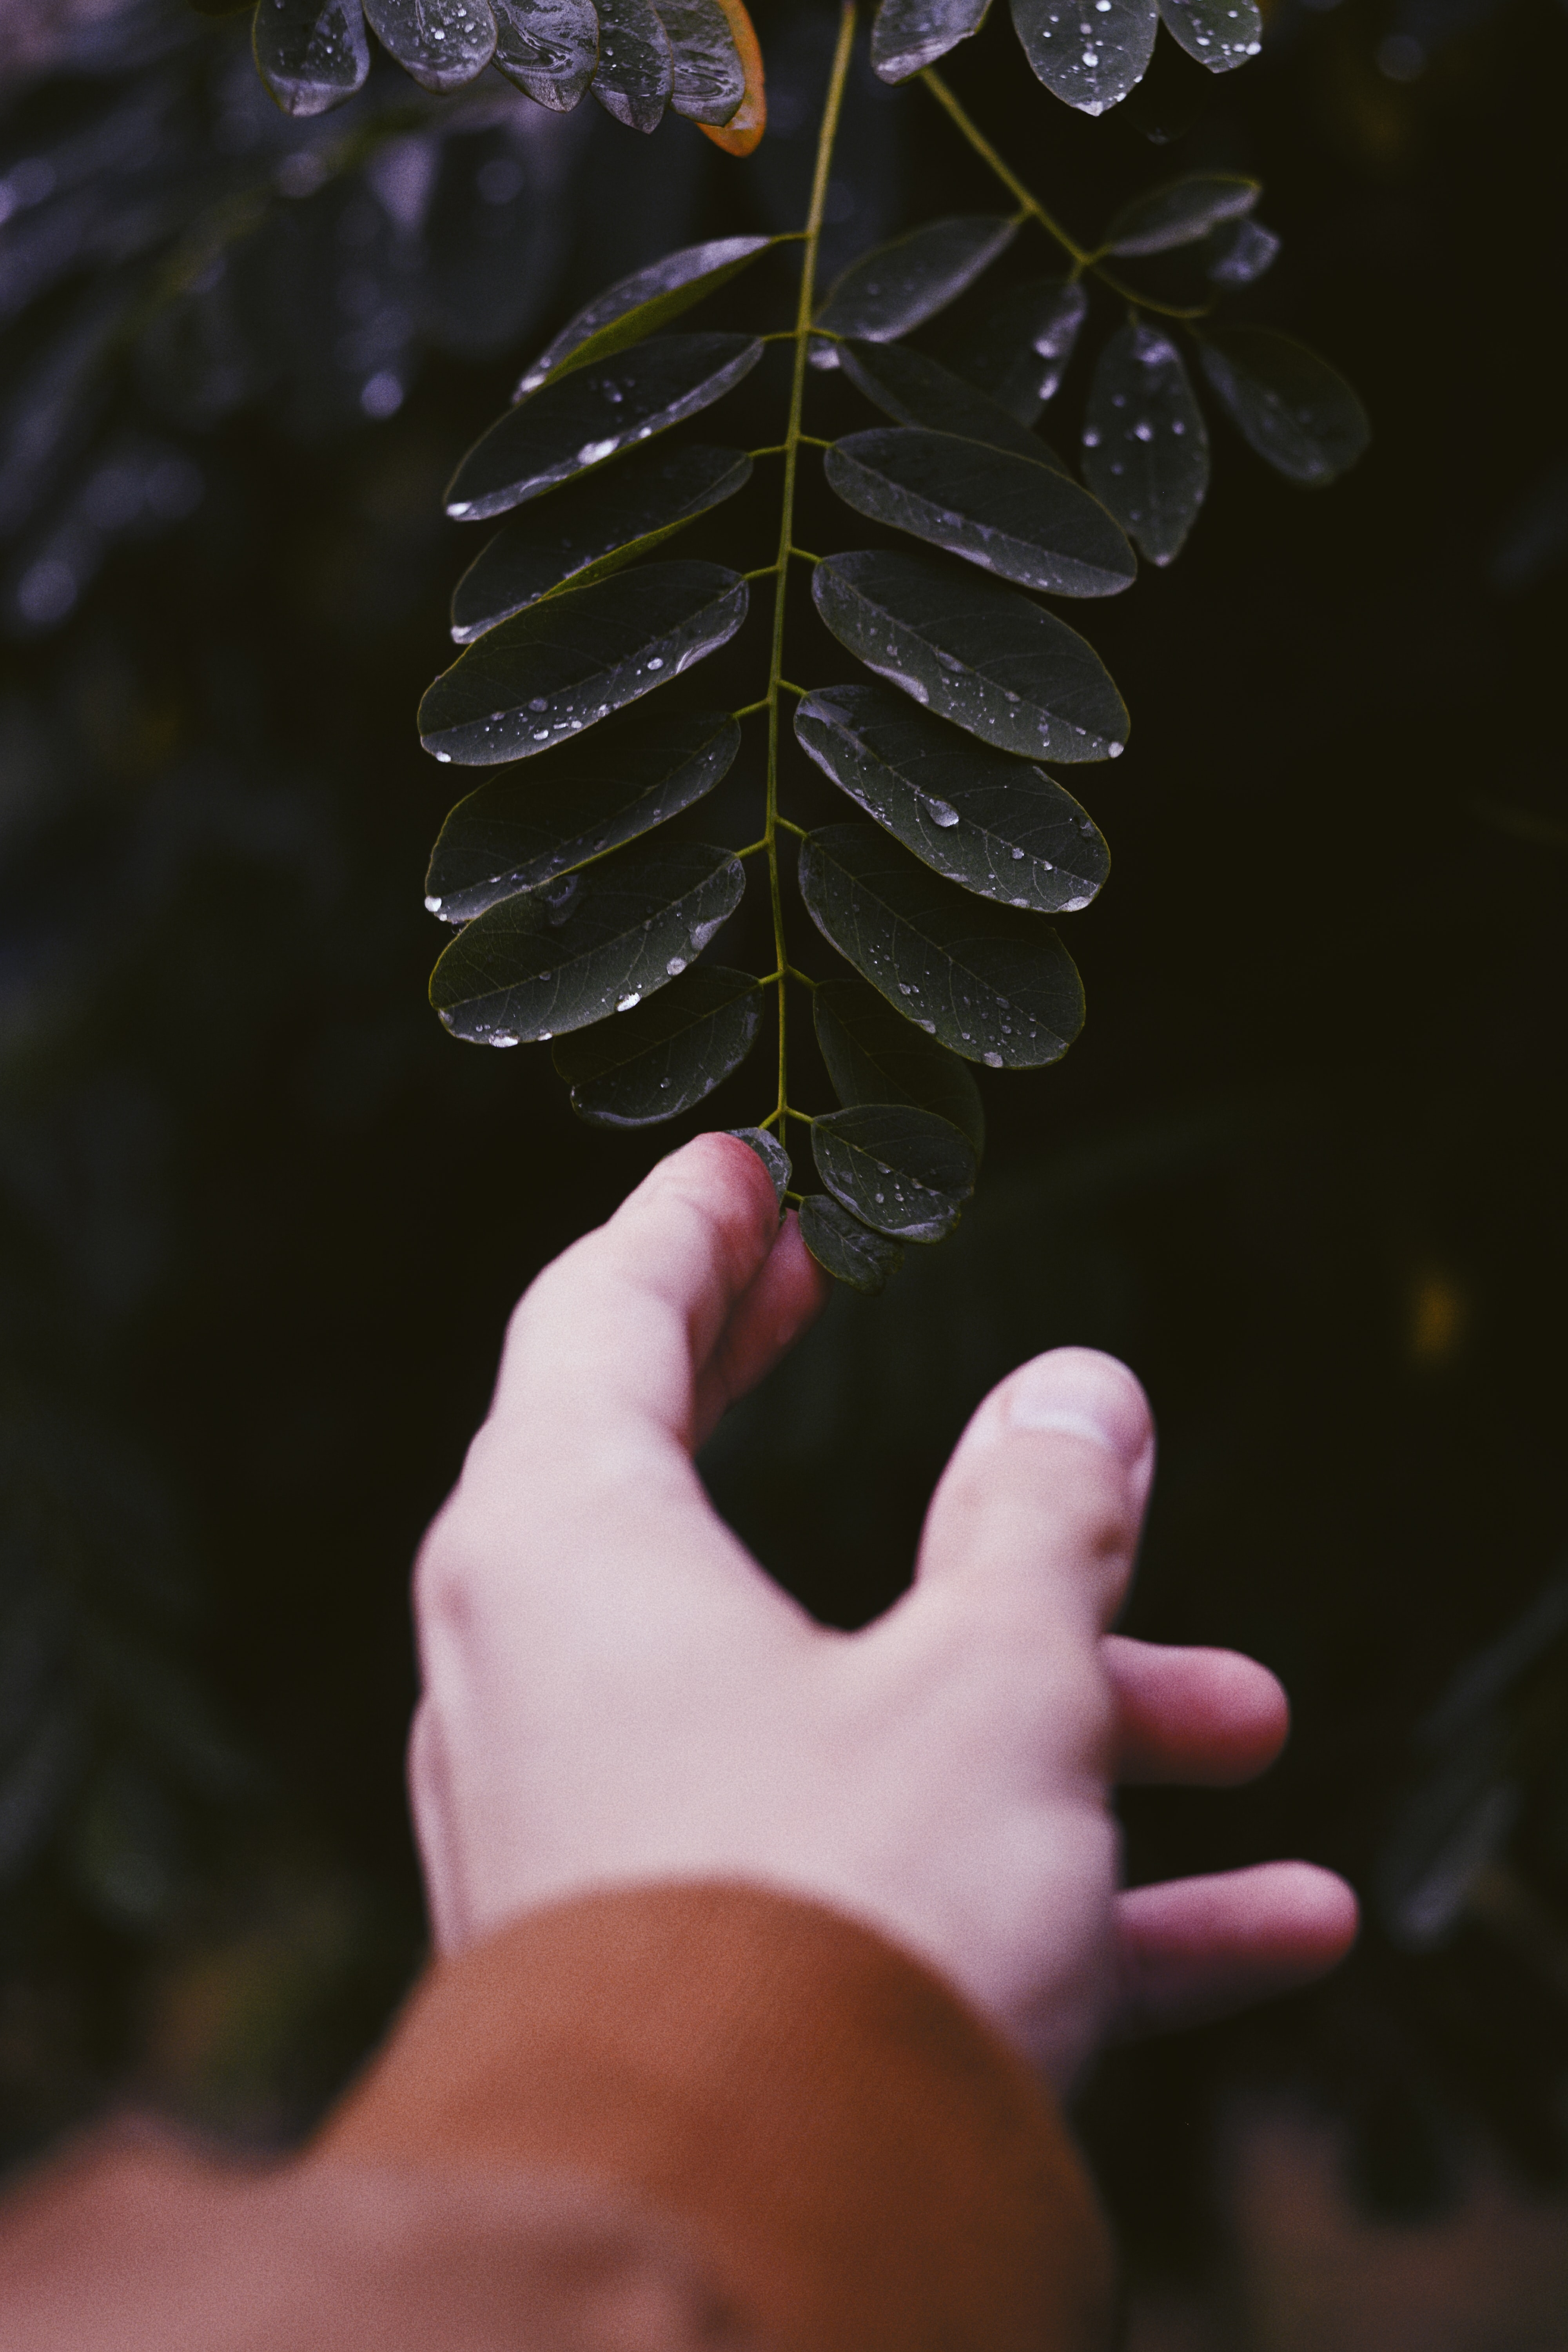 person touching green leaf plant with water dew